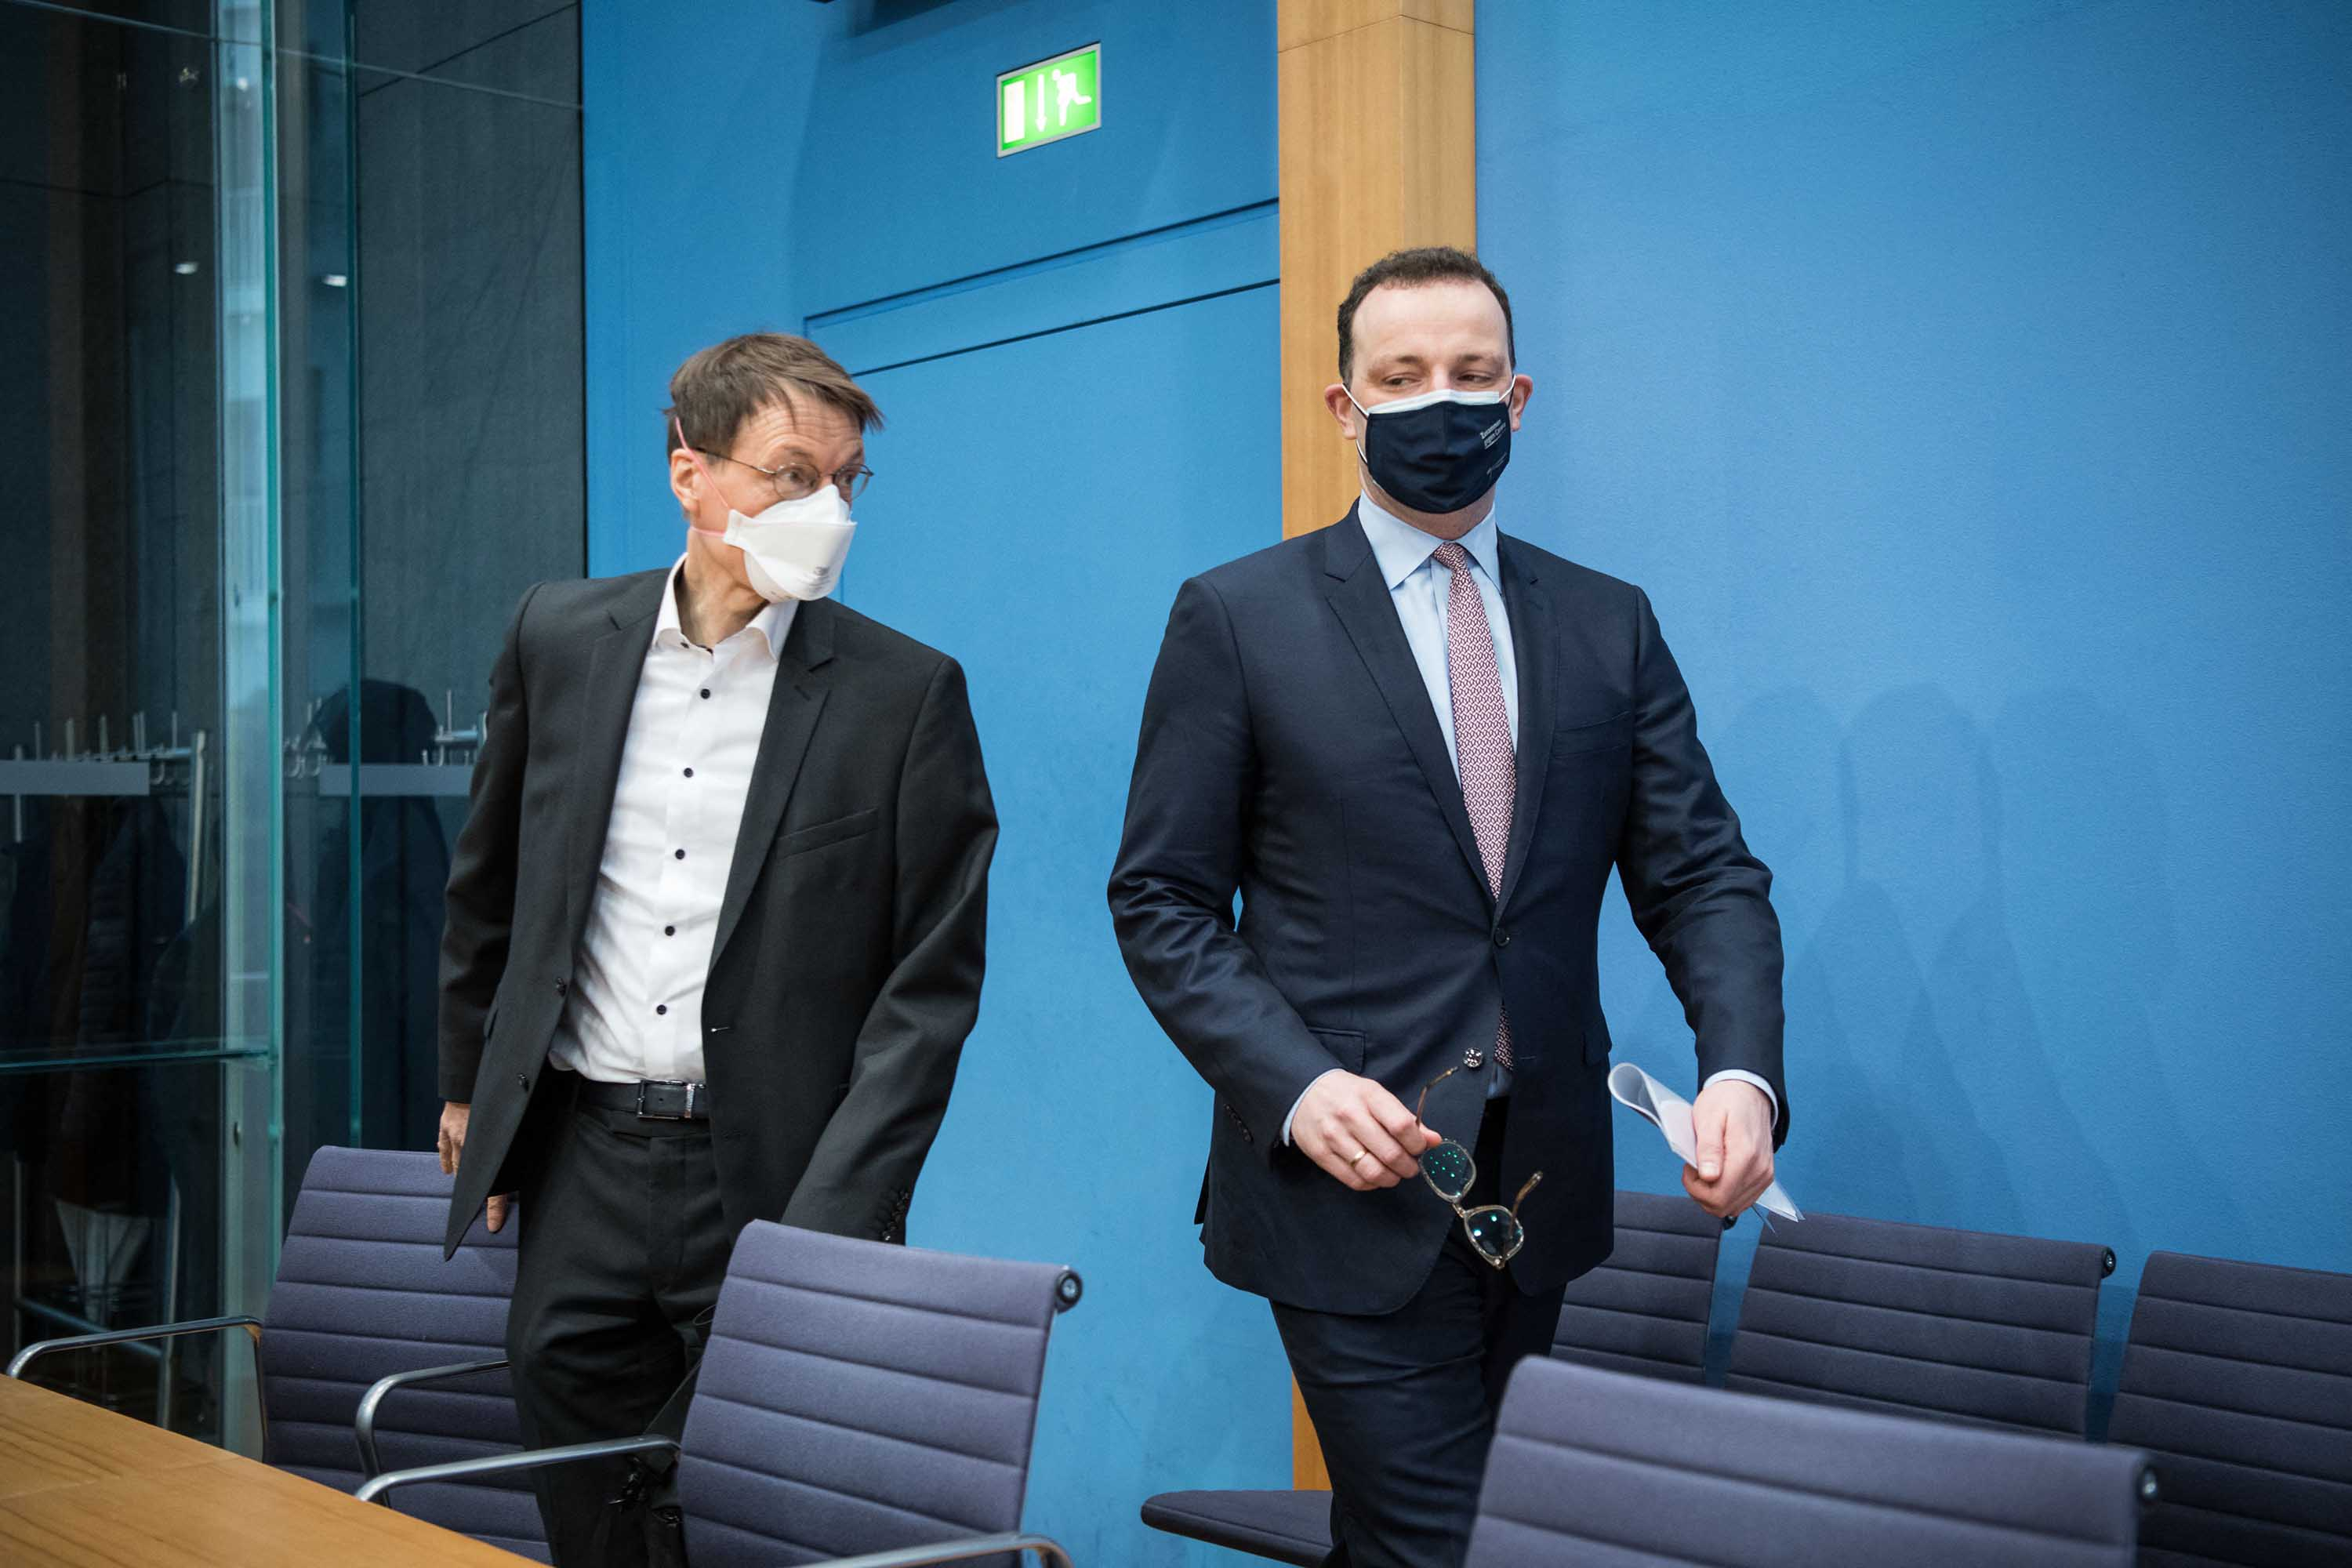 German Health Minister Jens Spahn, right, and German public health expert Karl Lauterbach arrive for a news conference on March 19, in Berlin.